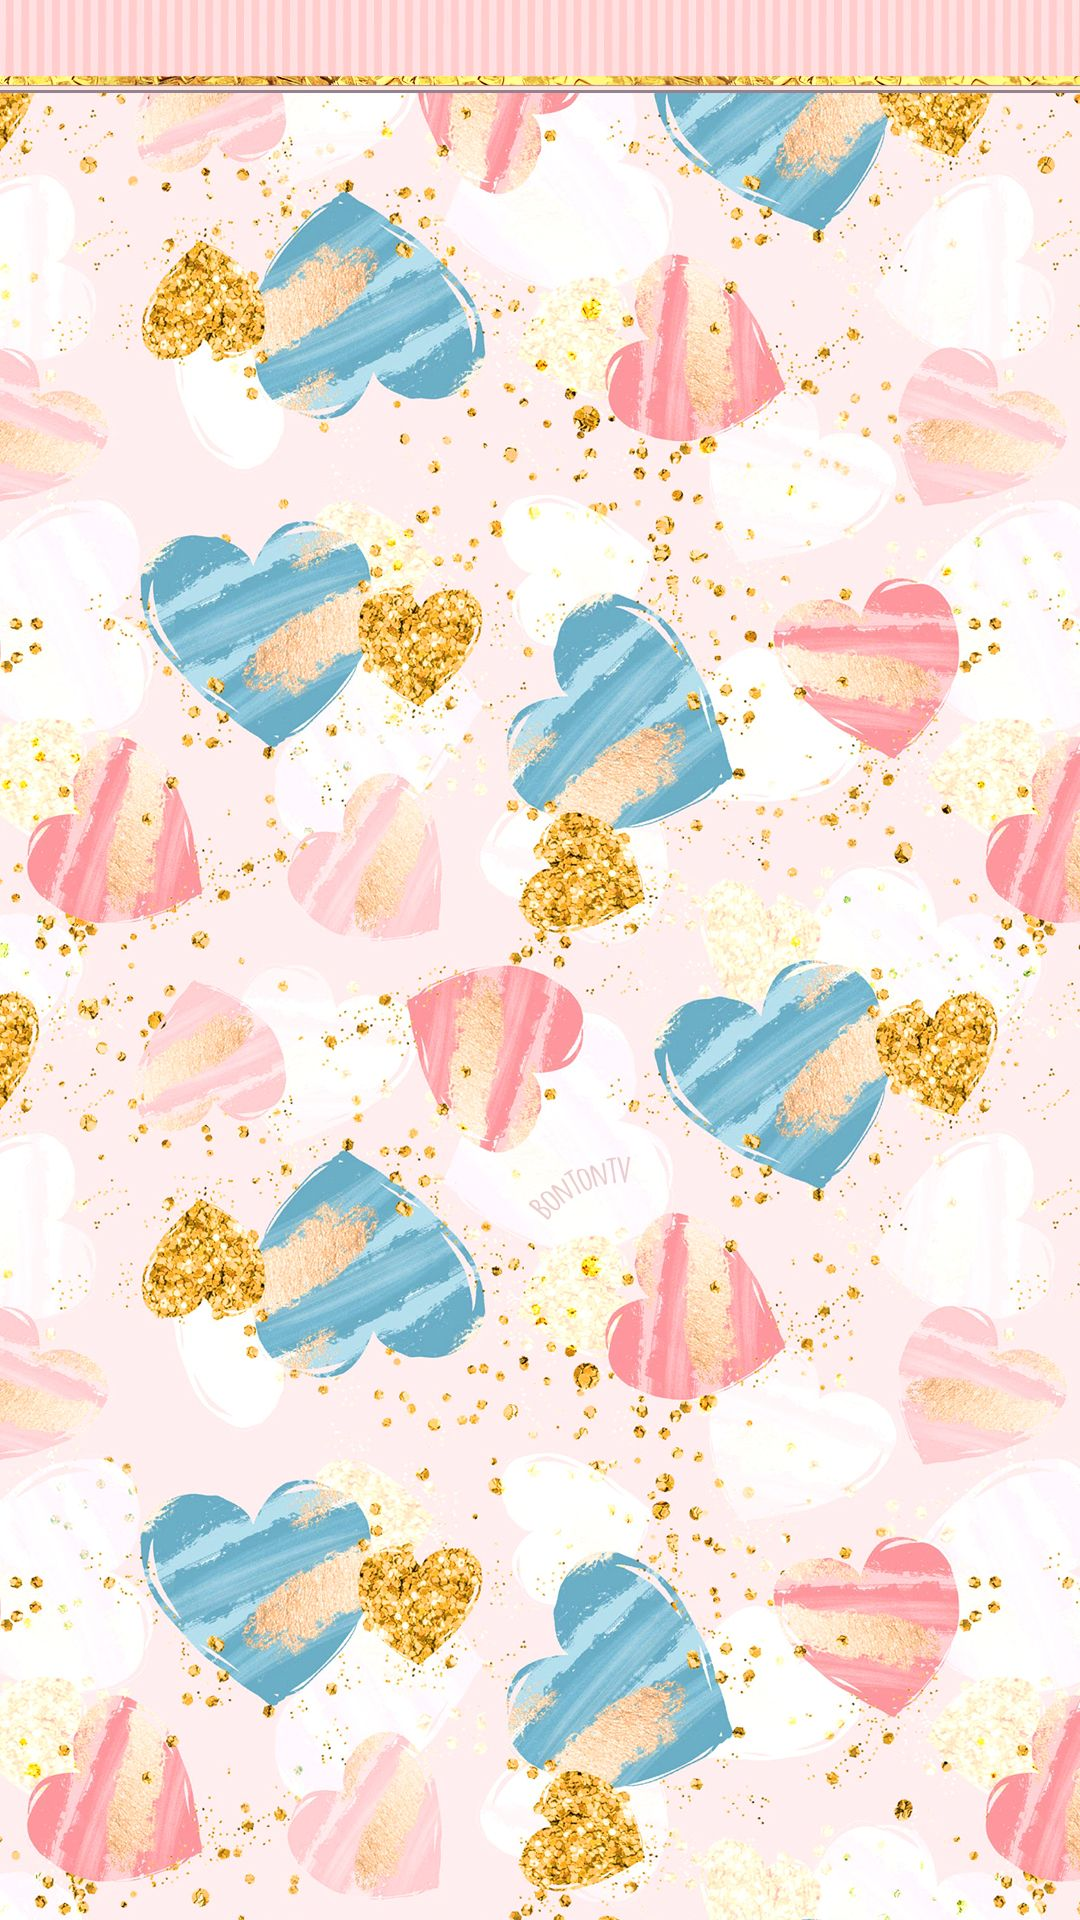 Phone Wallpapers Hd Cute Girly Pink Blue And Gold Hearts By